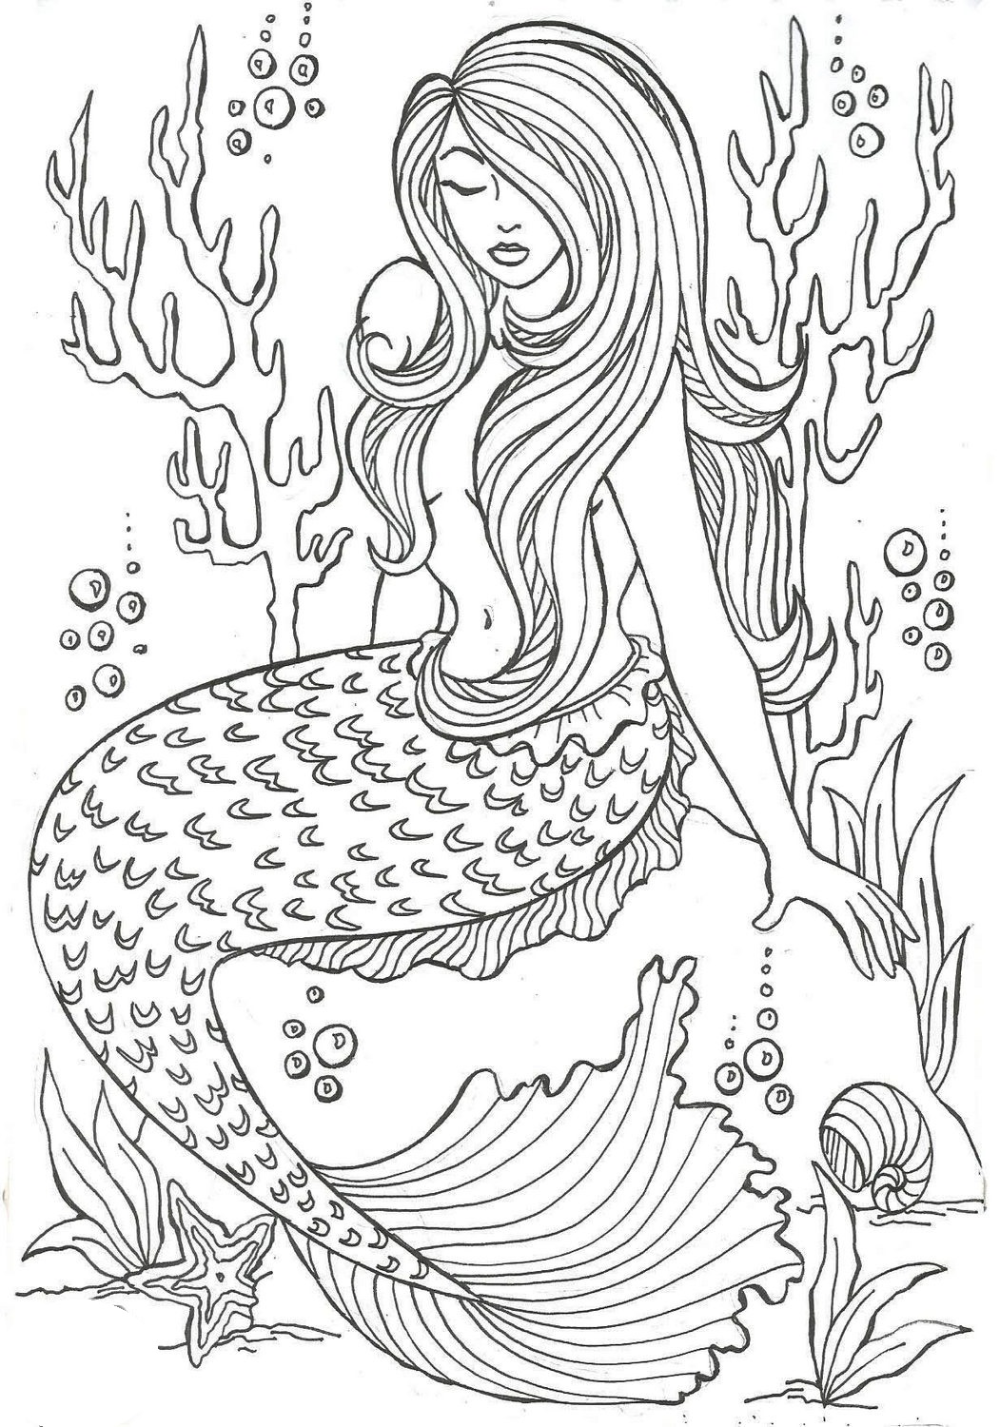 Realistic Mermaid Illustrations Undersea Coloring Sheets Mermaid Coloring Book Mermaid Coloring Pages Detailed Coloring Pages